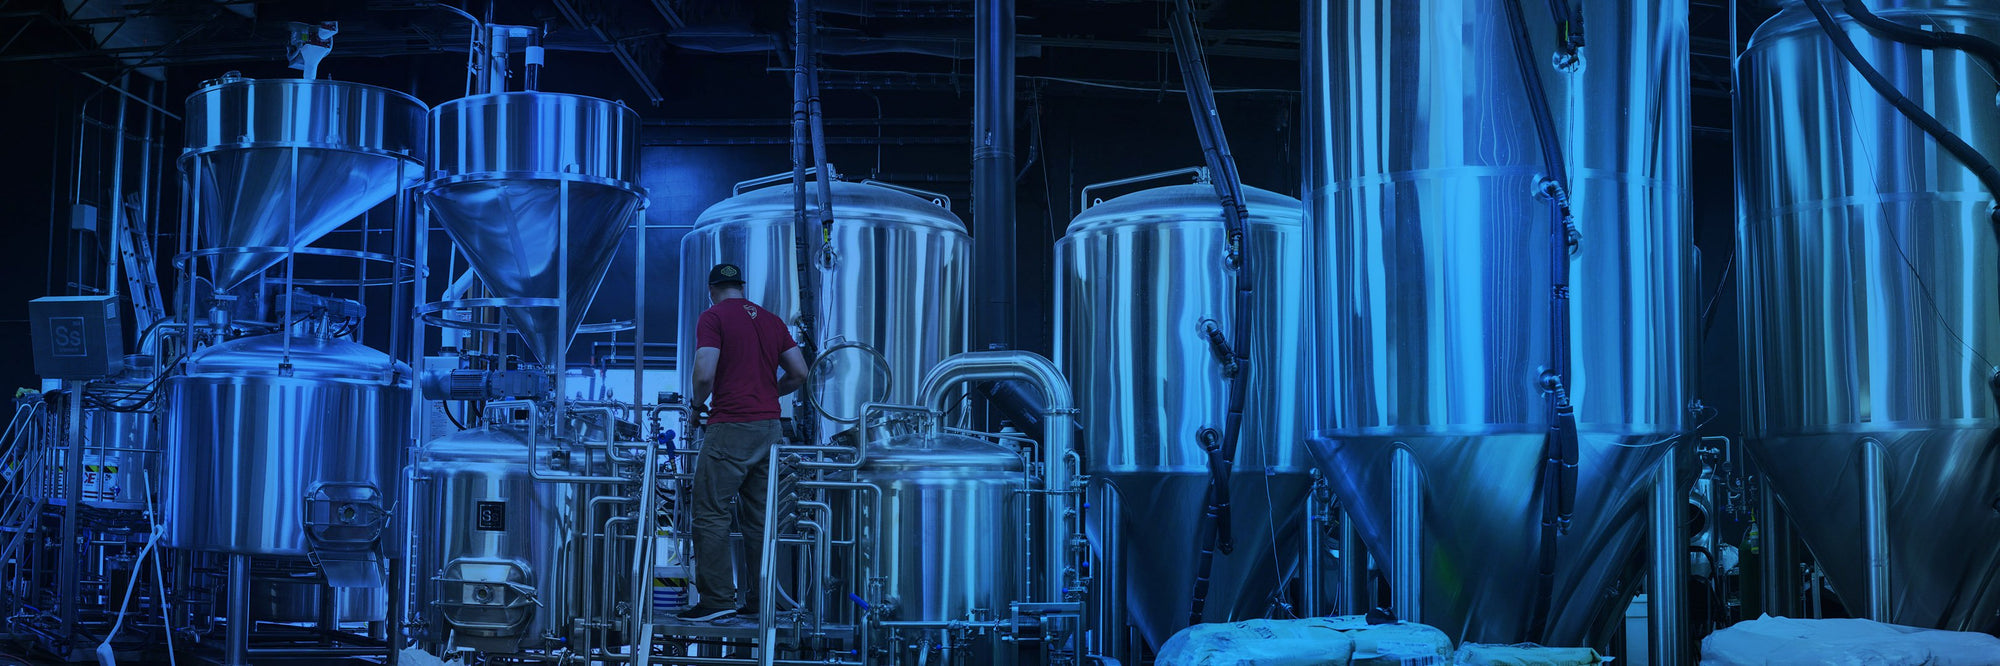 Ss Brewtech offers a full line of Professional Beer Brewing Equipment.  Brewhouses range in size from 1 bbl to 20 bbl and fermenters as large as 60 bbl are available.